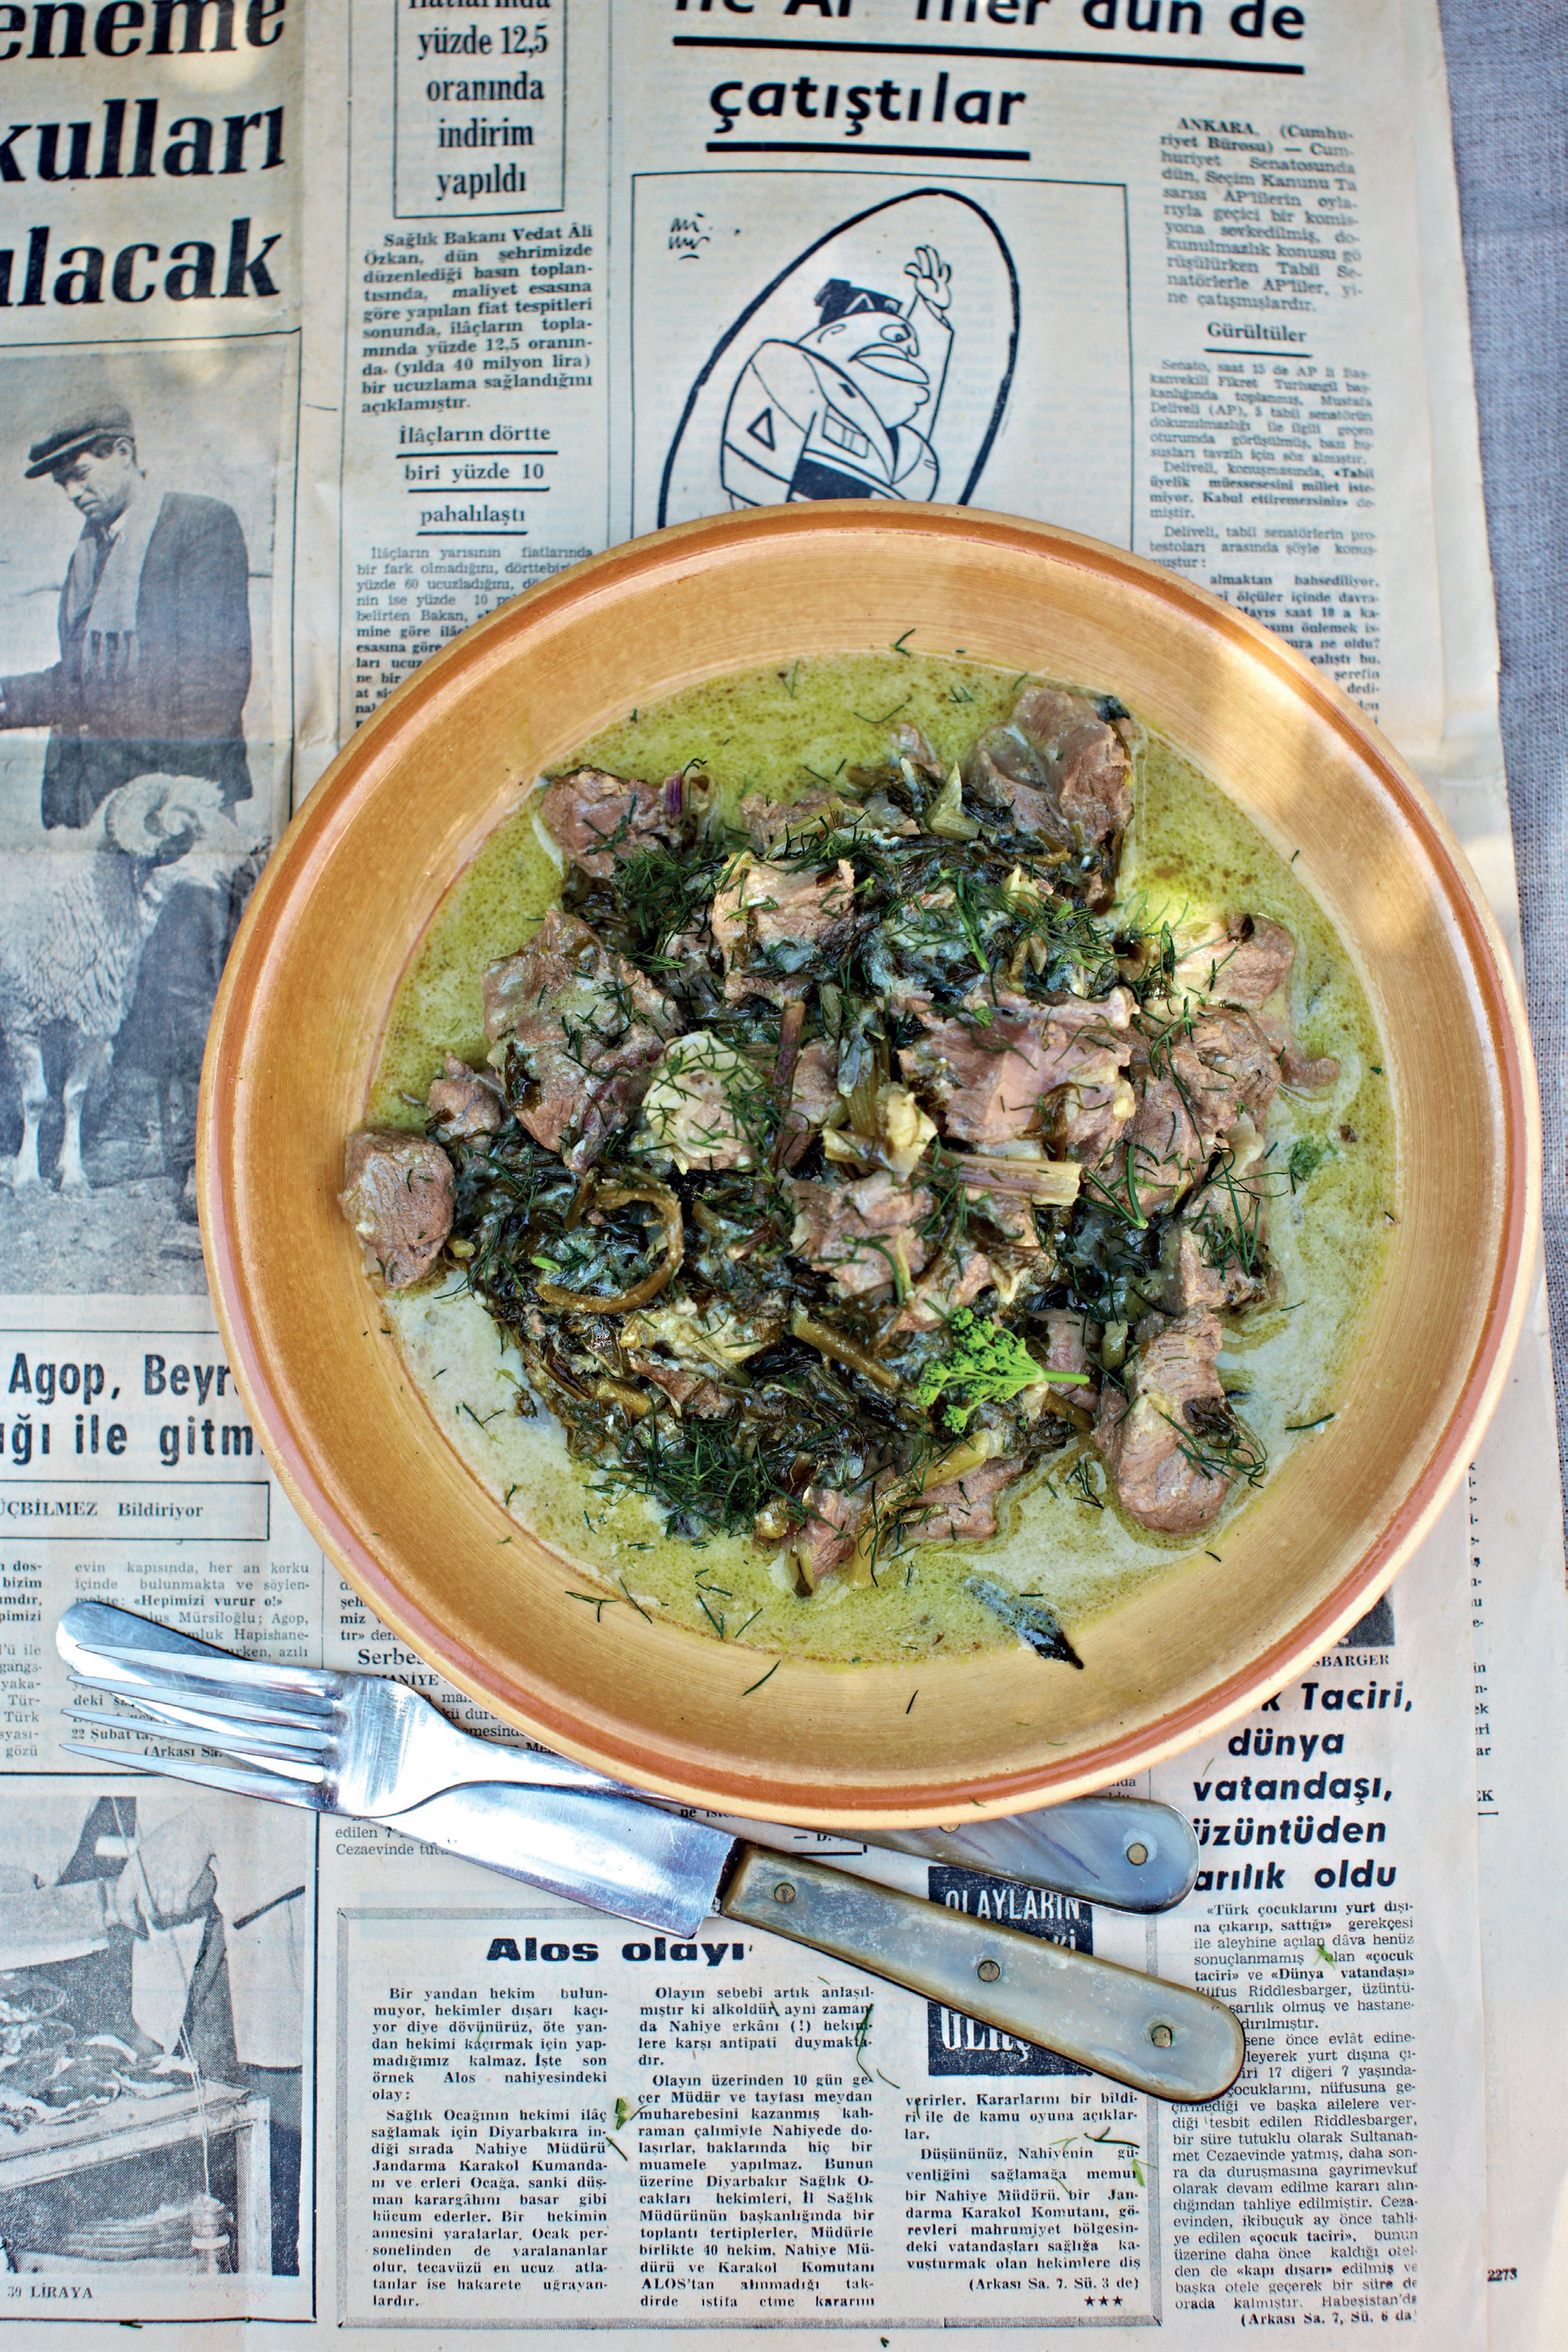 Lamb stew with wild greens and egg-lemon sauce